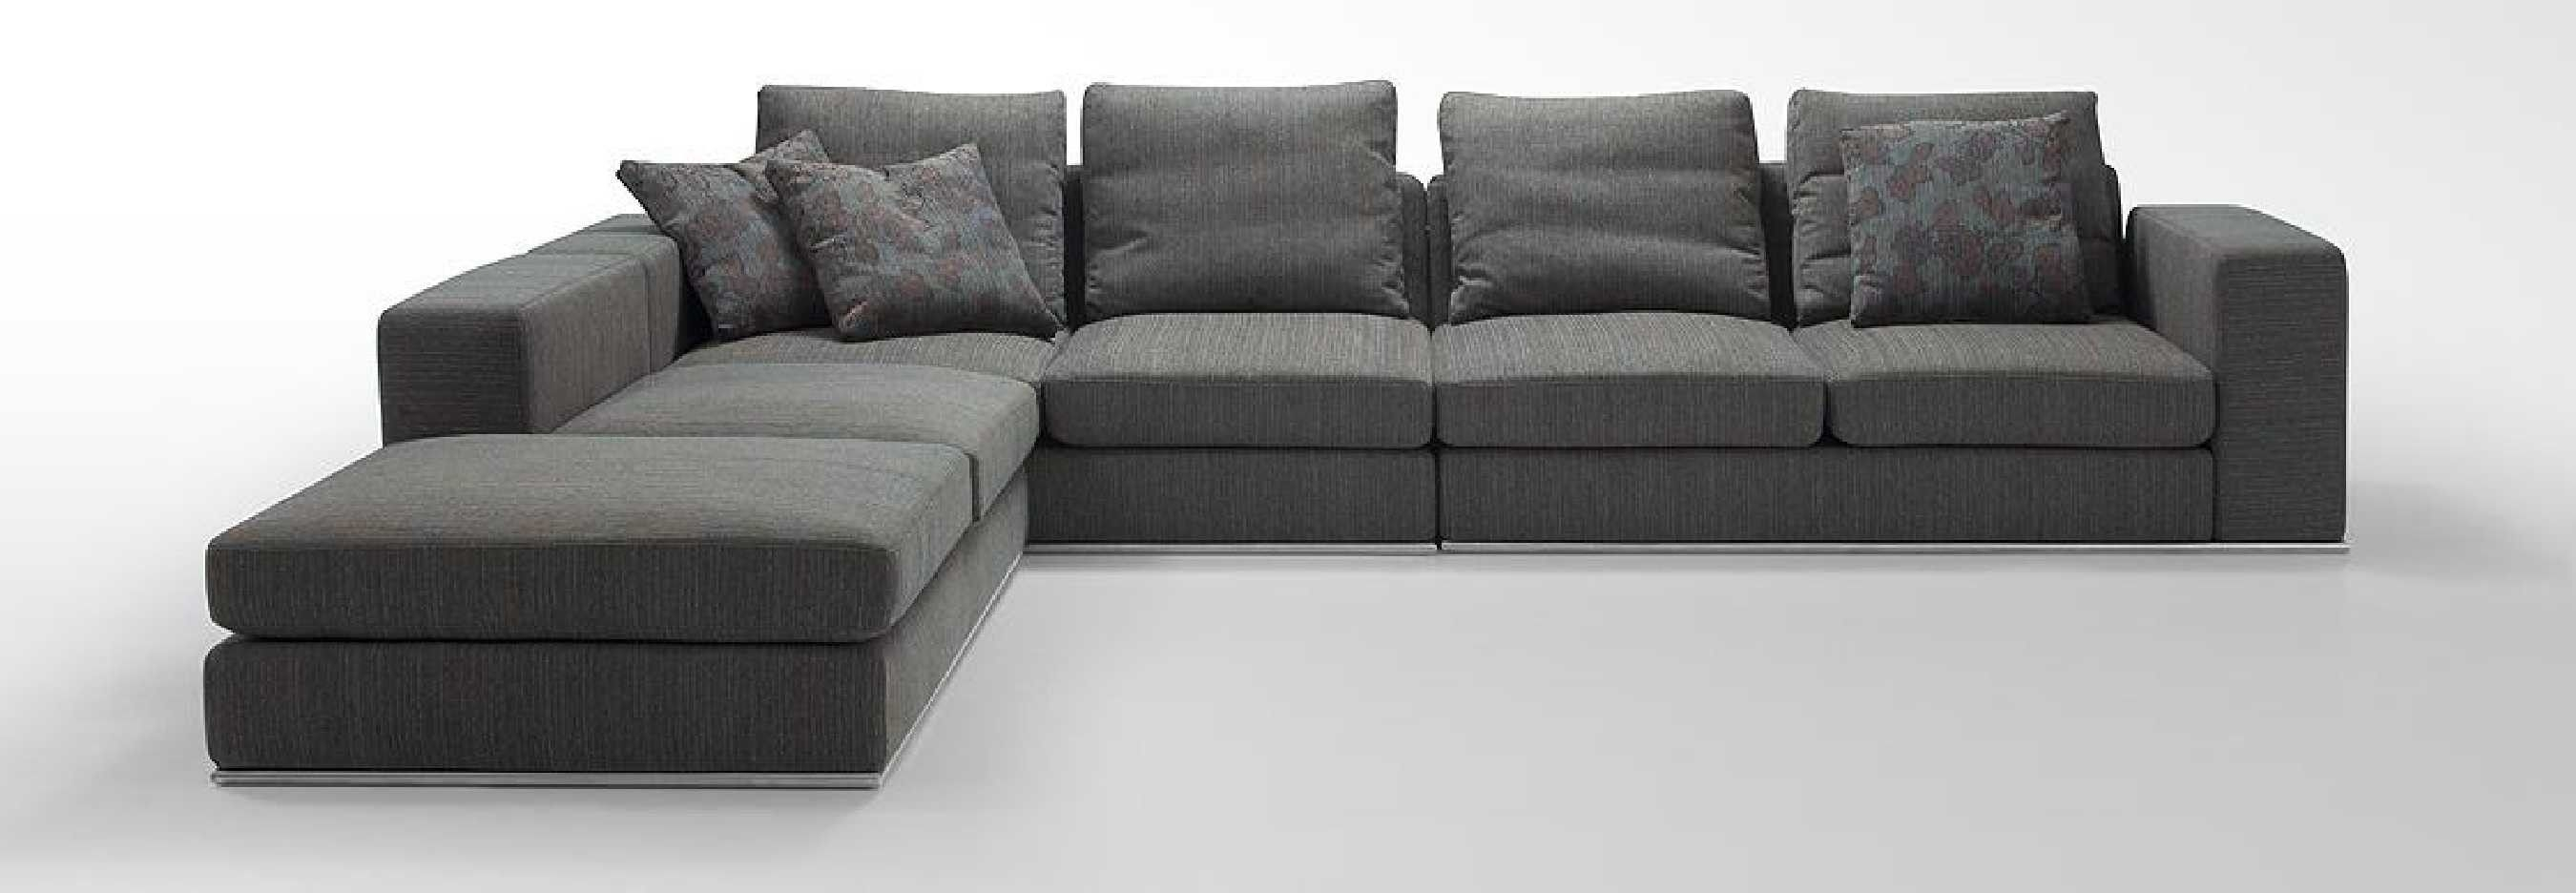 Compromise Grey L Shaped Couch Appealing Sofa Come With Modern Comfy Throughout L Shaped Sectional Sofas (View 8 of 10)